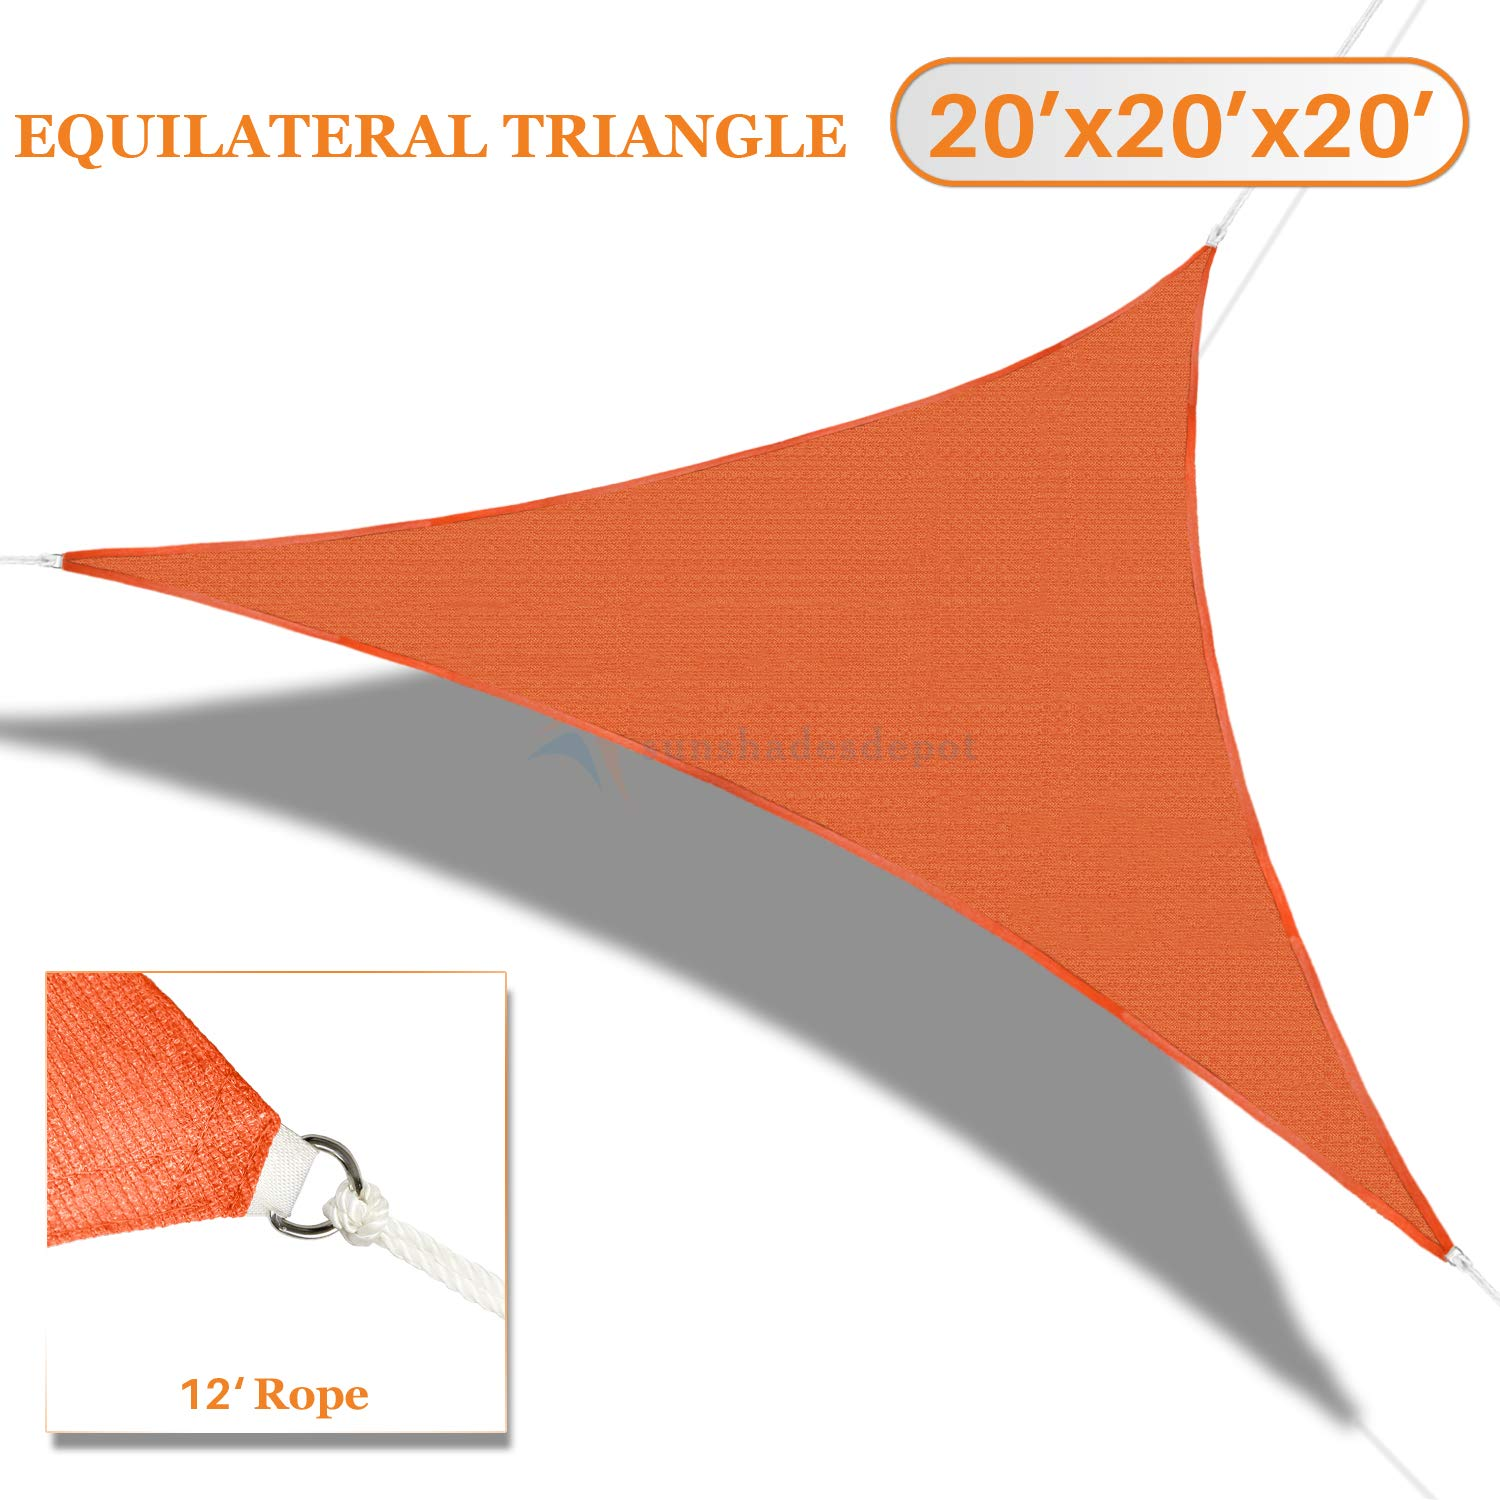 Sunshades Depot 20' x 20' x 20' Orange Sun Shade Sail 180 GSM Equilateral Triangle Permeable Canopy Custom Commercial Standard